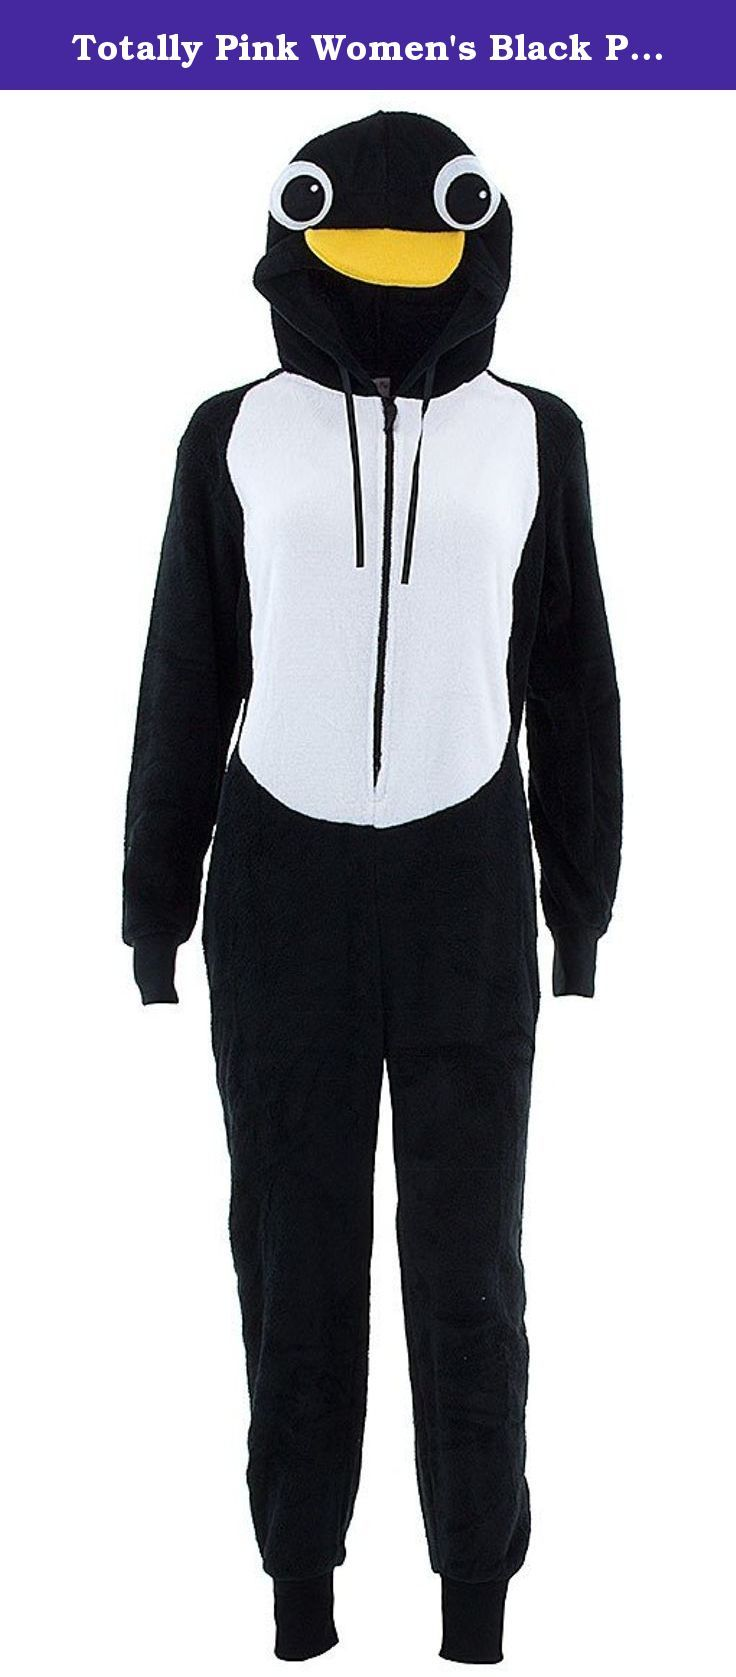 Totally Pink Women's Black Penguin Hooded One-Piece Pajamas L. These Totally Pink brand onesie pajamas are black with a white penguin tummy. The hood has a cute penguin's face on the front with a yellow fabric beak sticking up from the hood. The sleeves and leg bottoms are cuffed with black jersey knit fabric. The polyester fleece fabric is machine washable and is warm and cozy. These Totally Pink brand one-piece pajamas zip up the front for easy access.